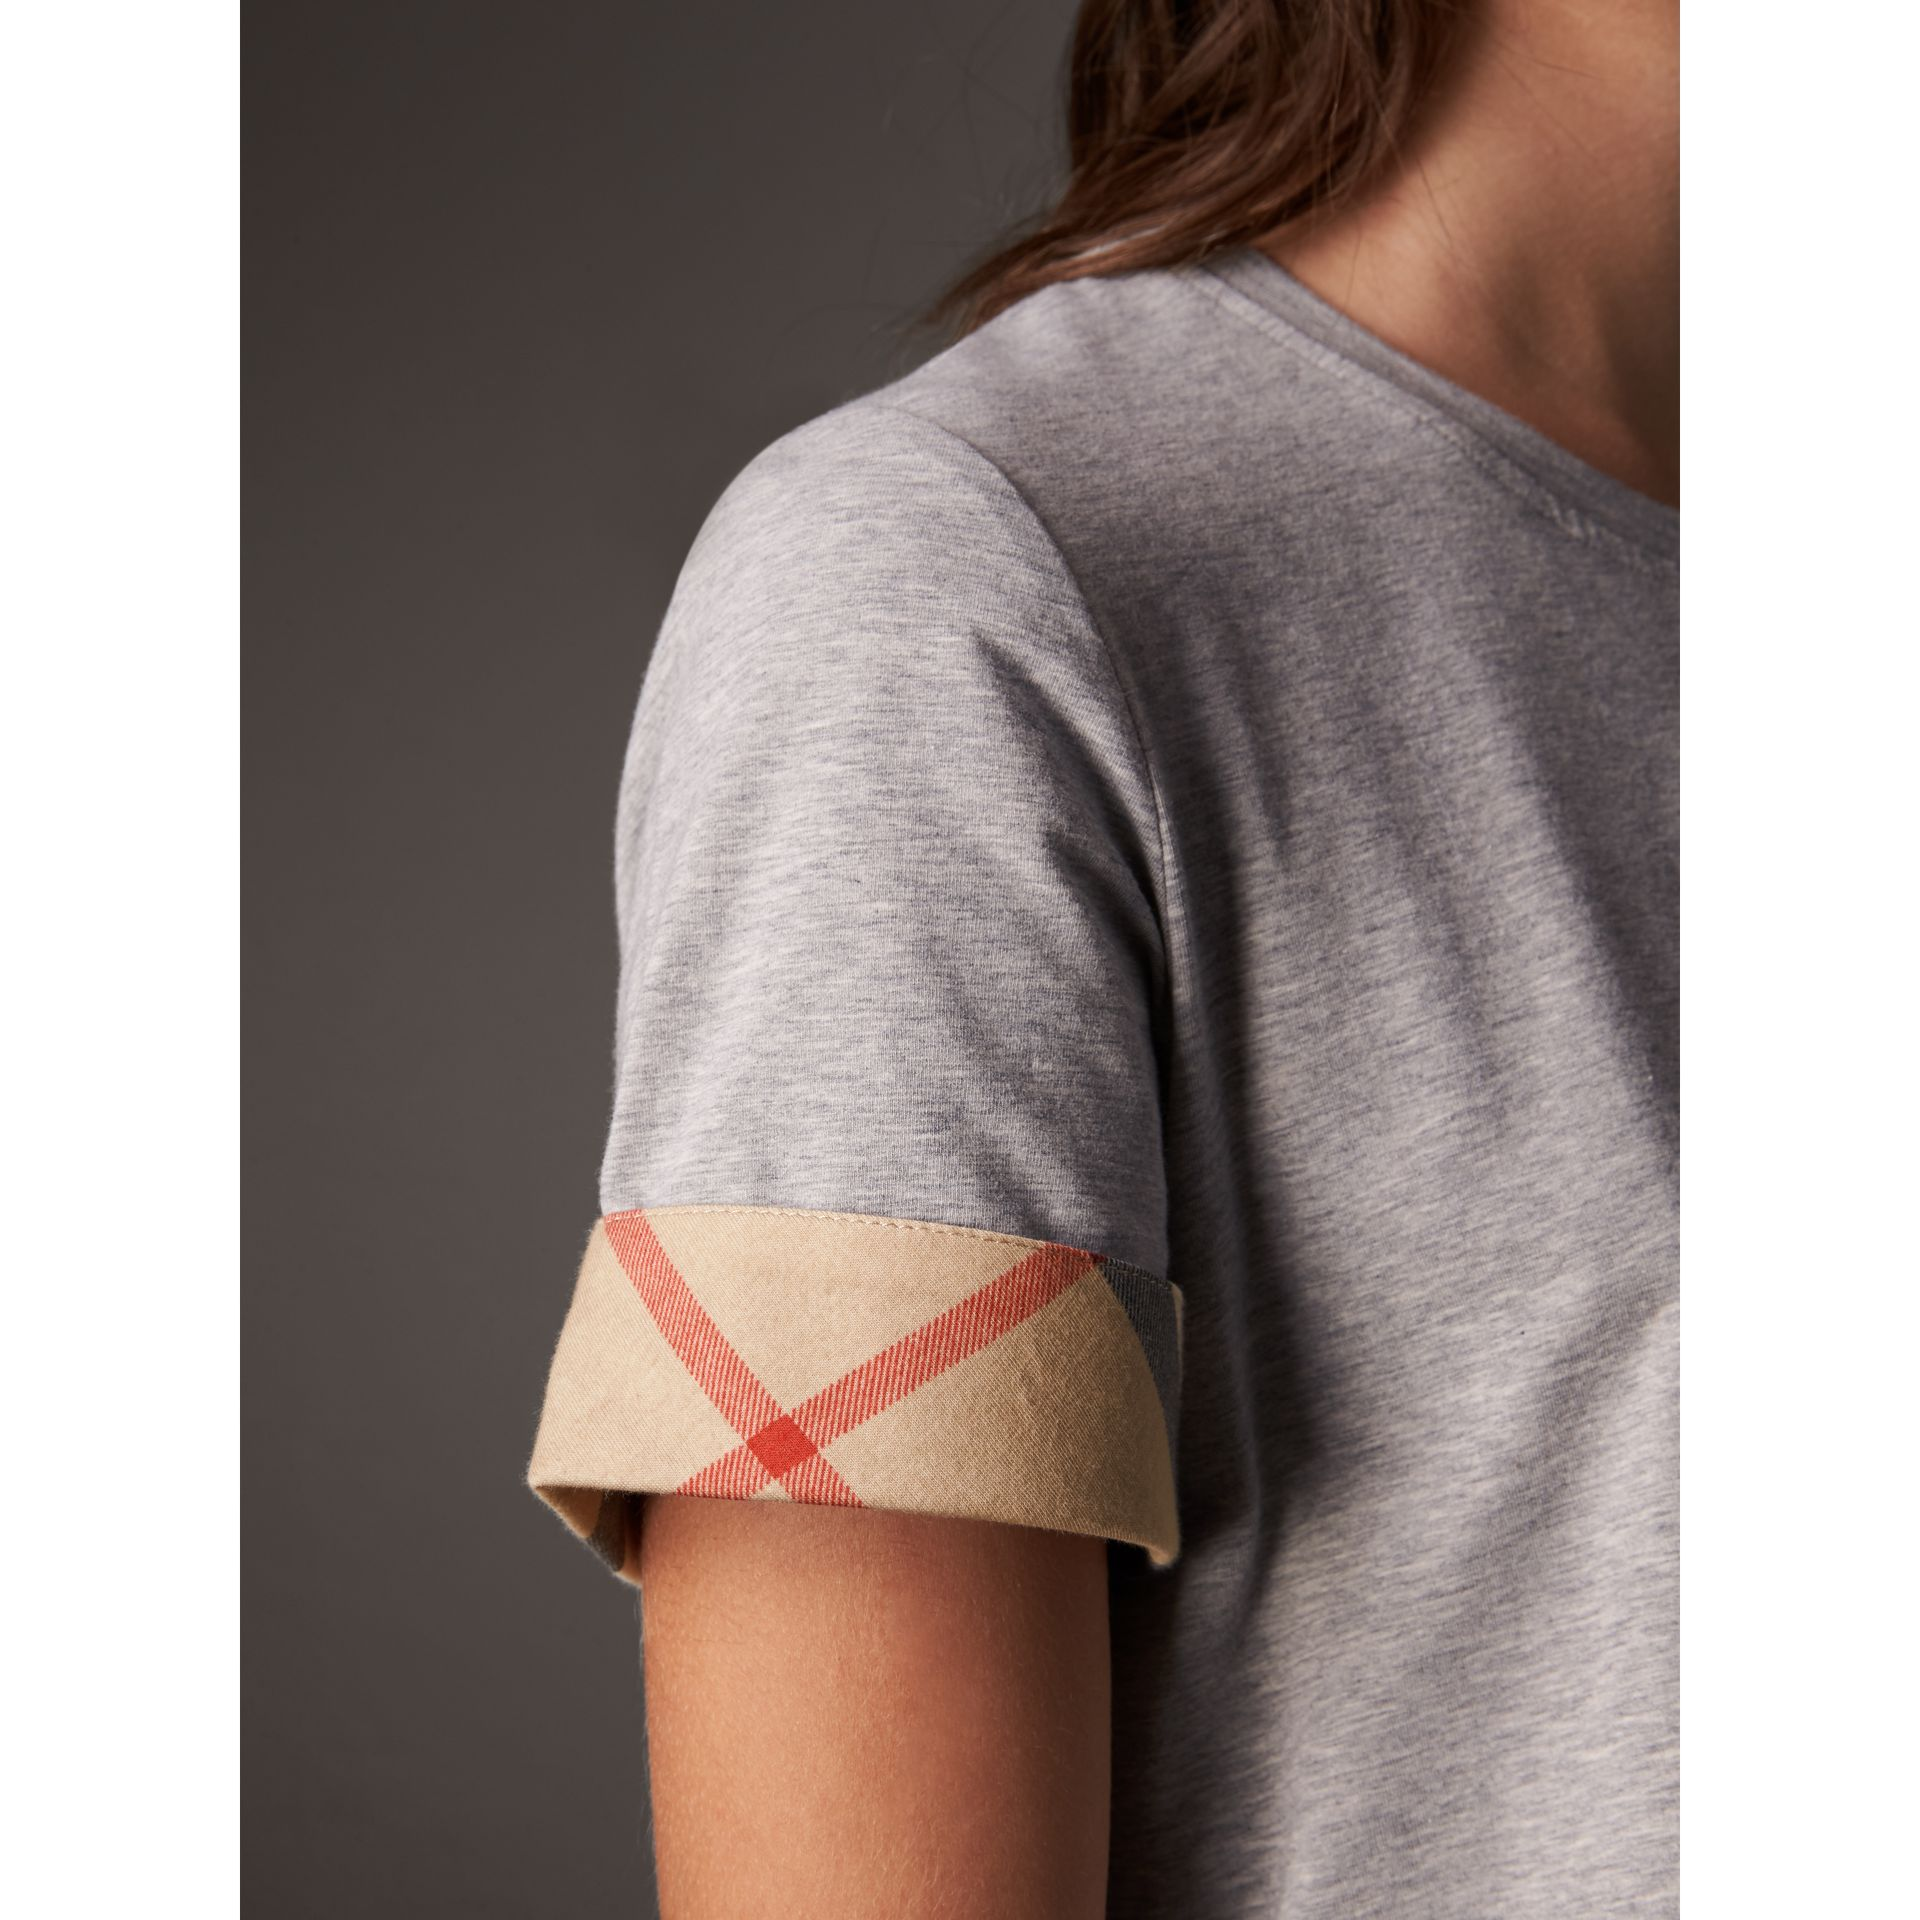 Check Cuff Stretch Cotton T-Shirt in Pale Grey Melange - Women | Burberry - gallery image 5